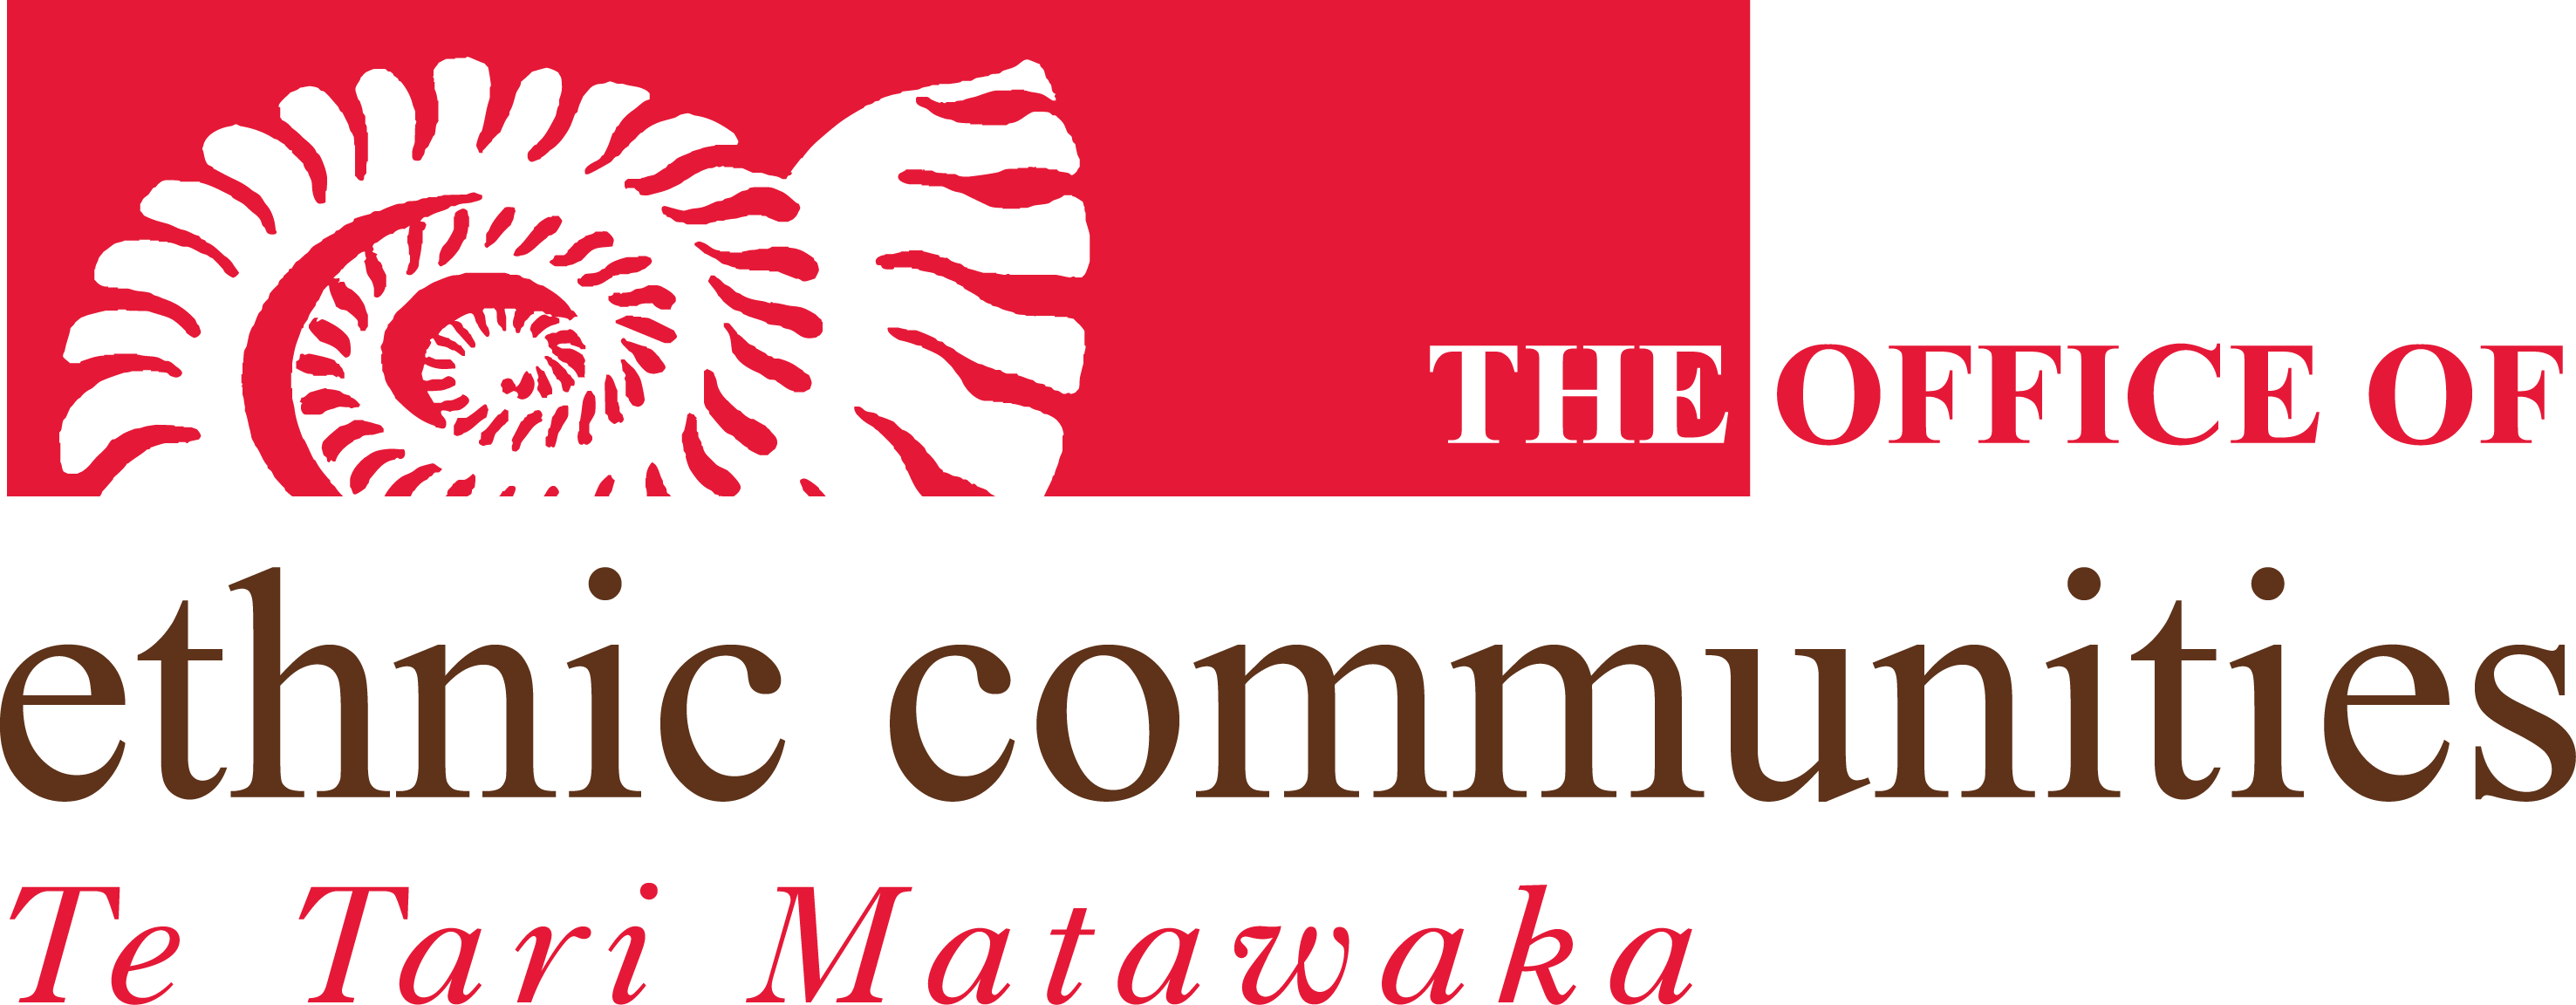 Ethnic Communities logo